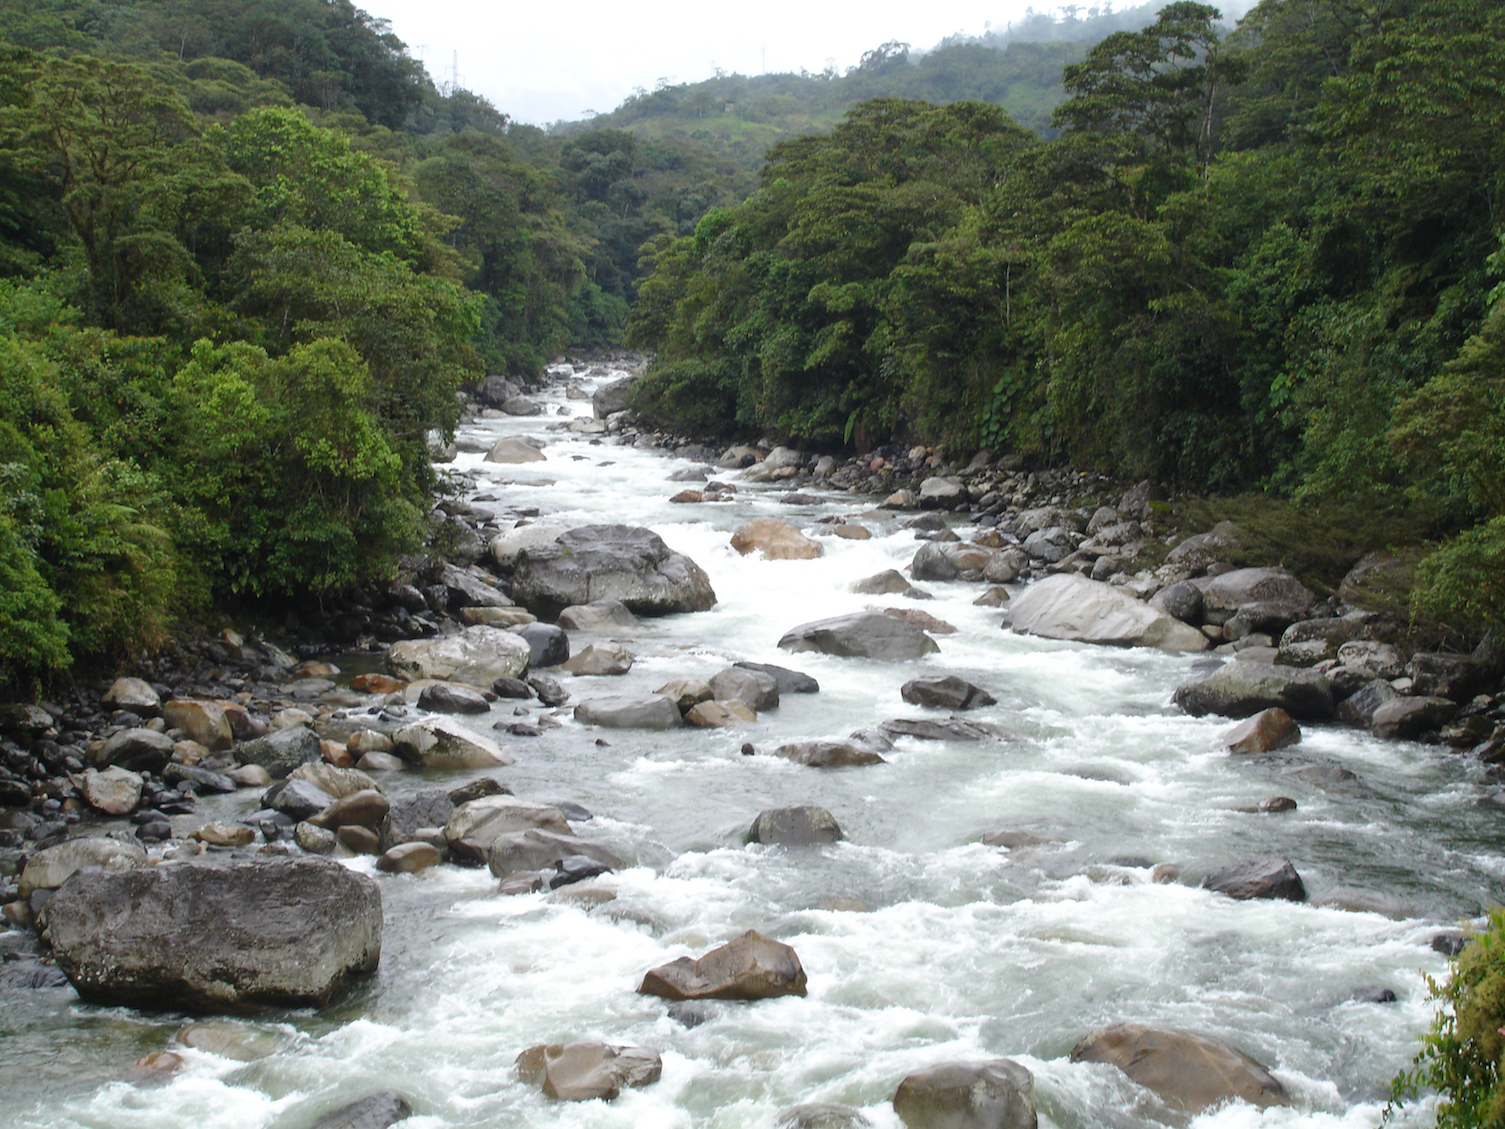 A new study has revealed that hydropower dams in the Andes region of the Amazon are disturbing the flow of life within the area's rivers.